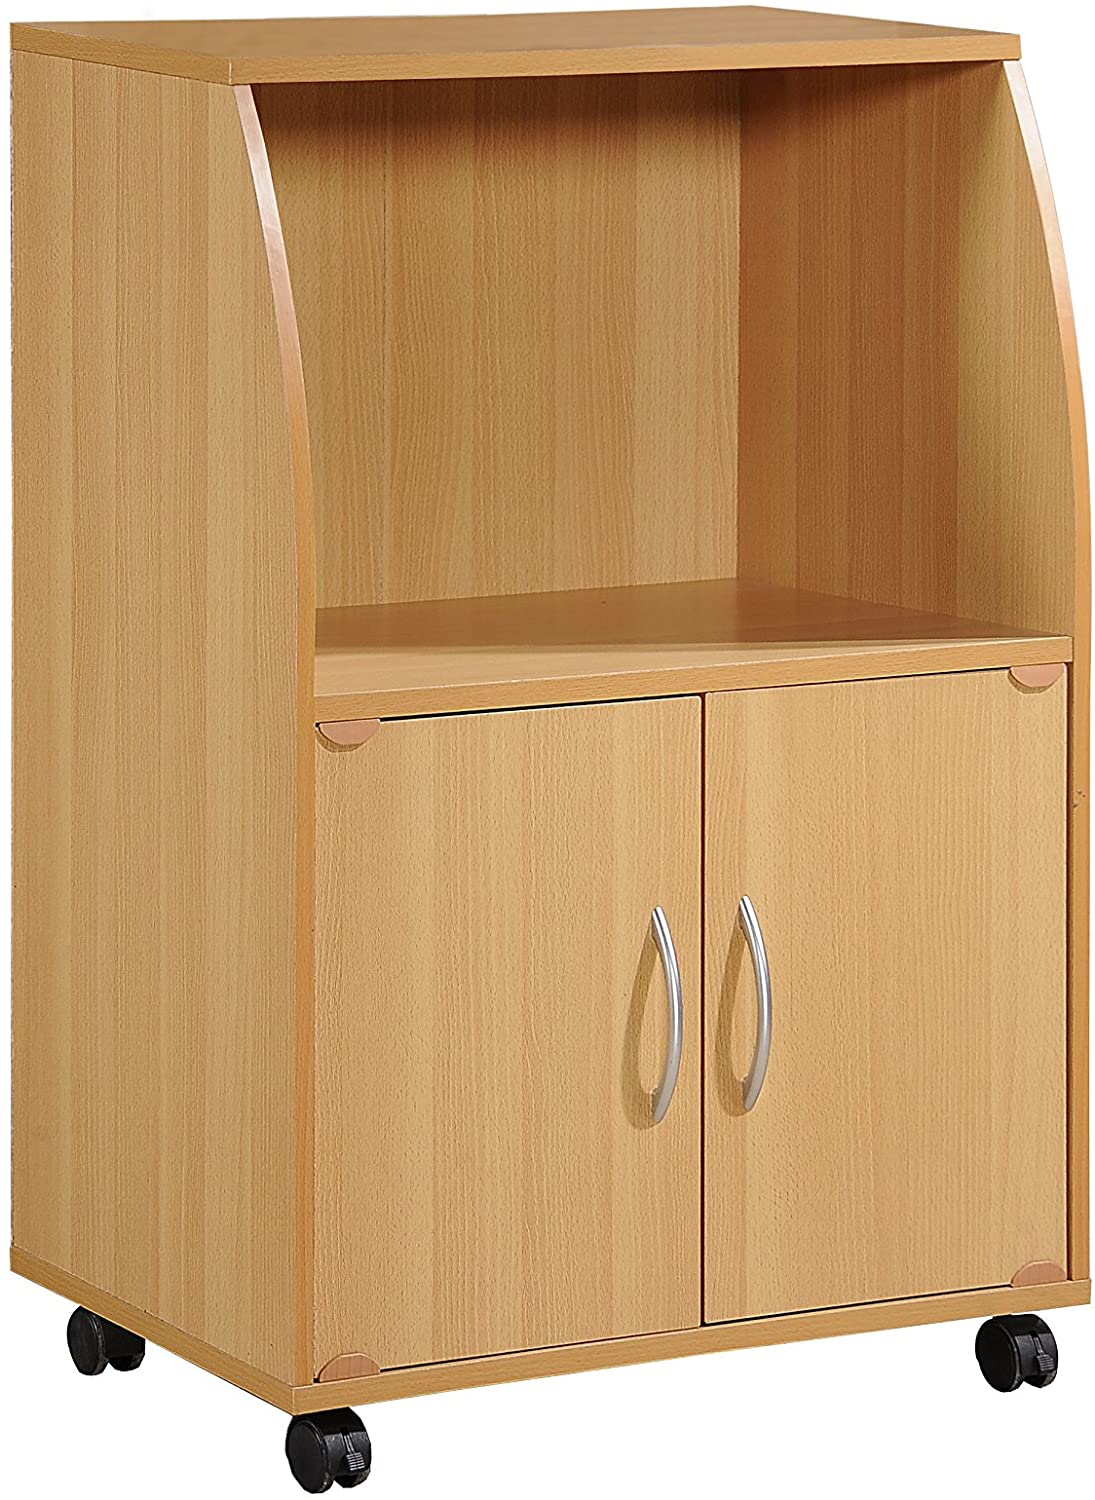 Hodedah Mini Microwave Cart with Two Doors and Shelf for Storage